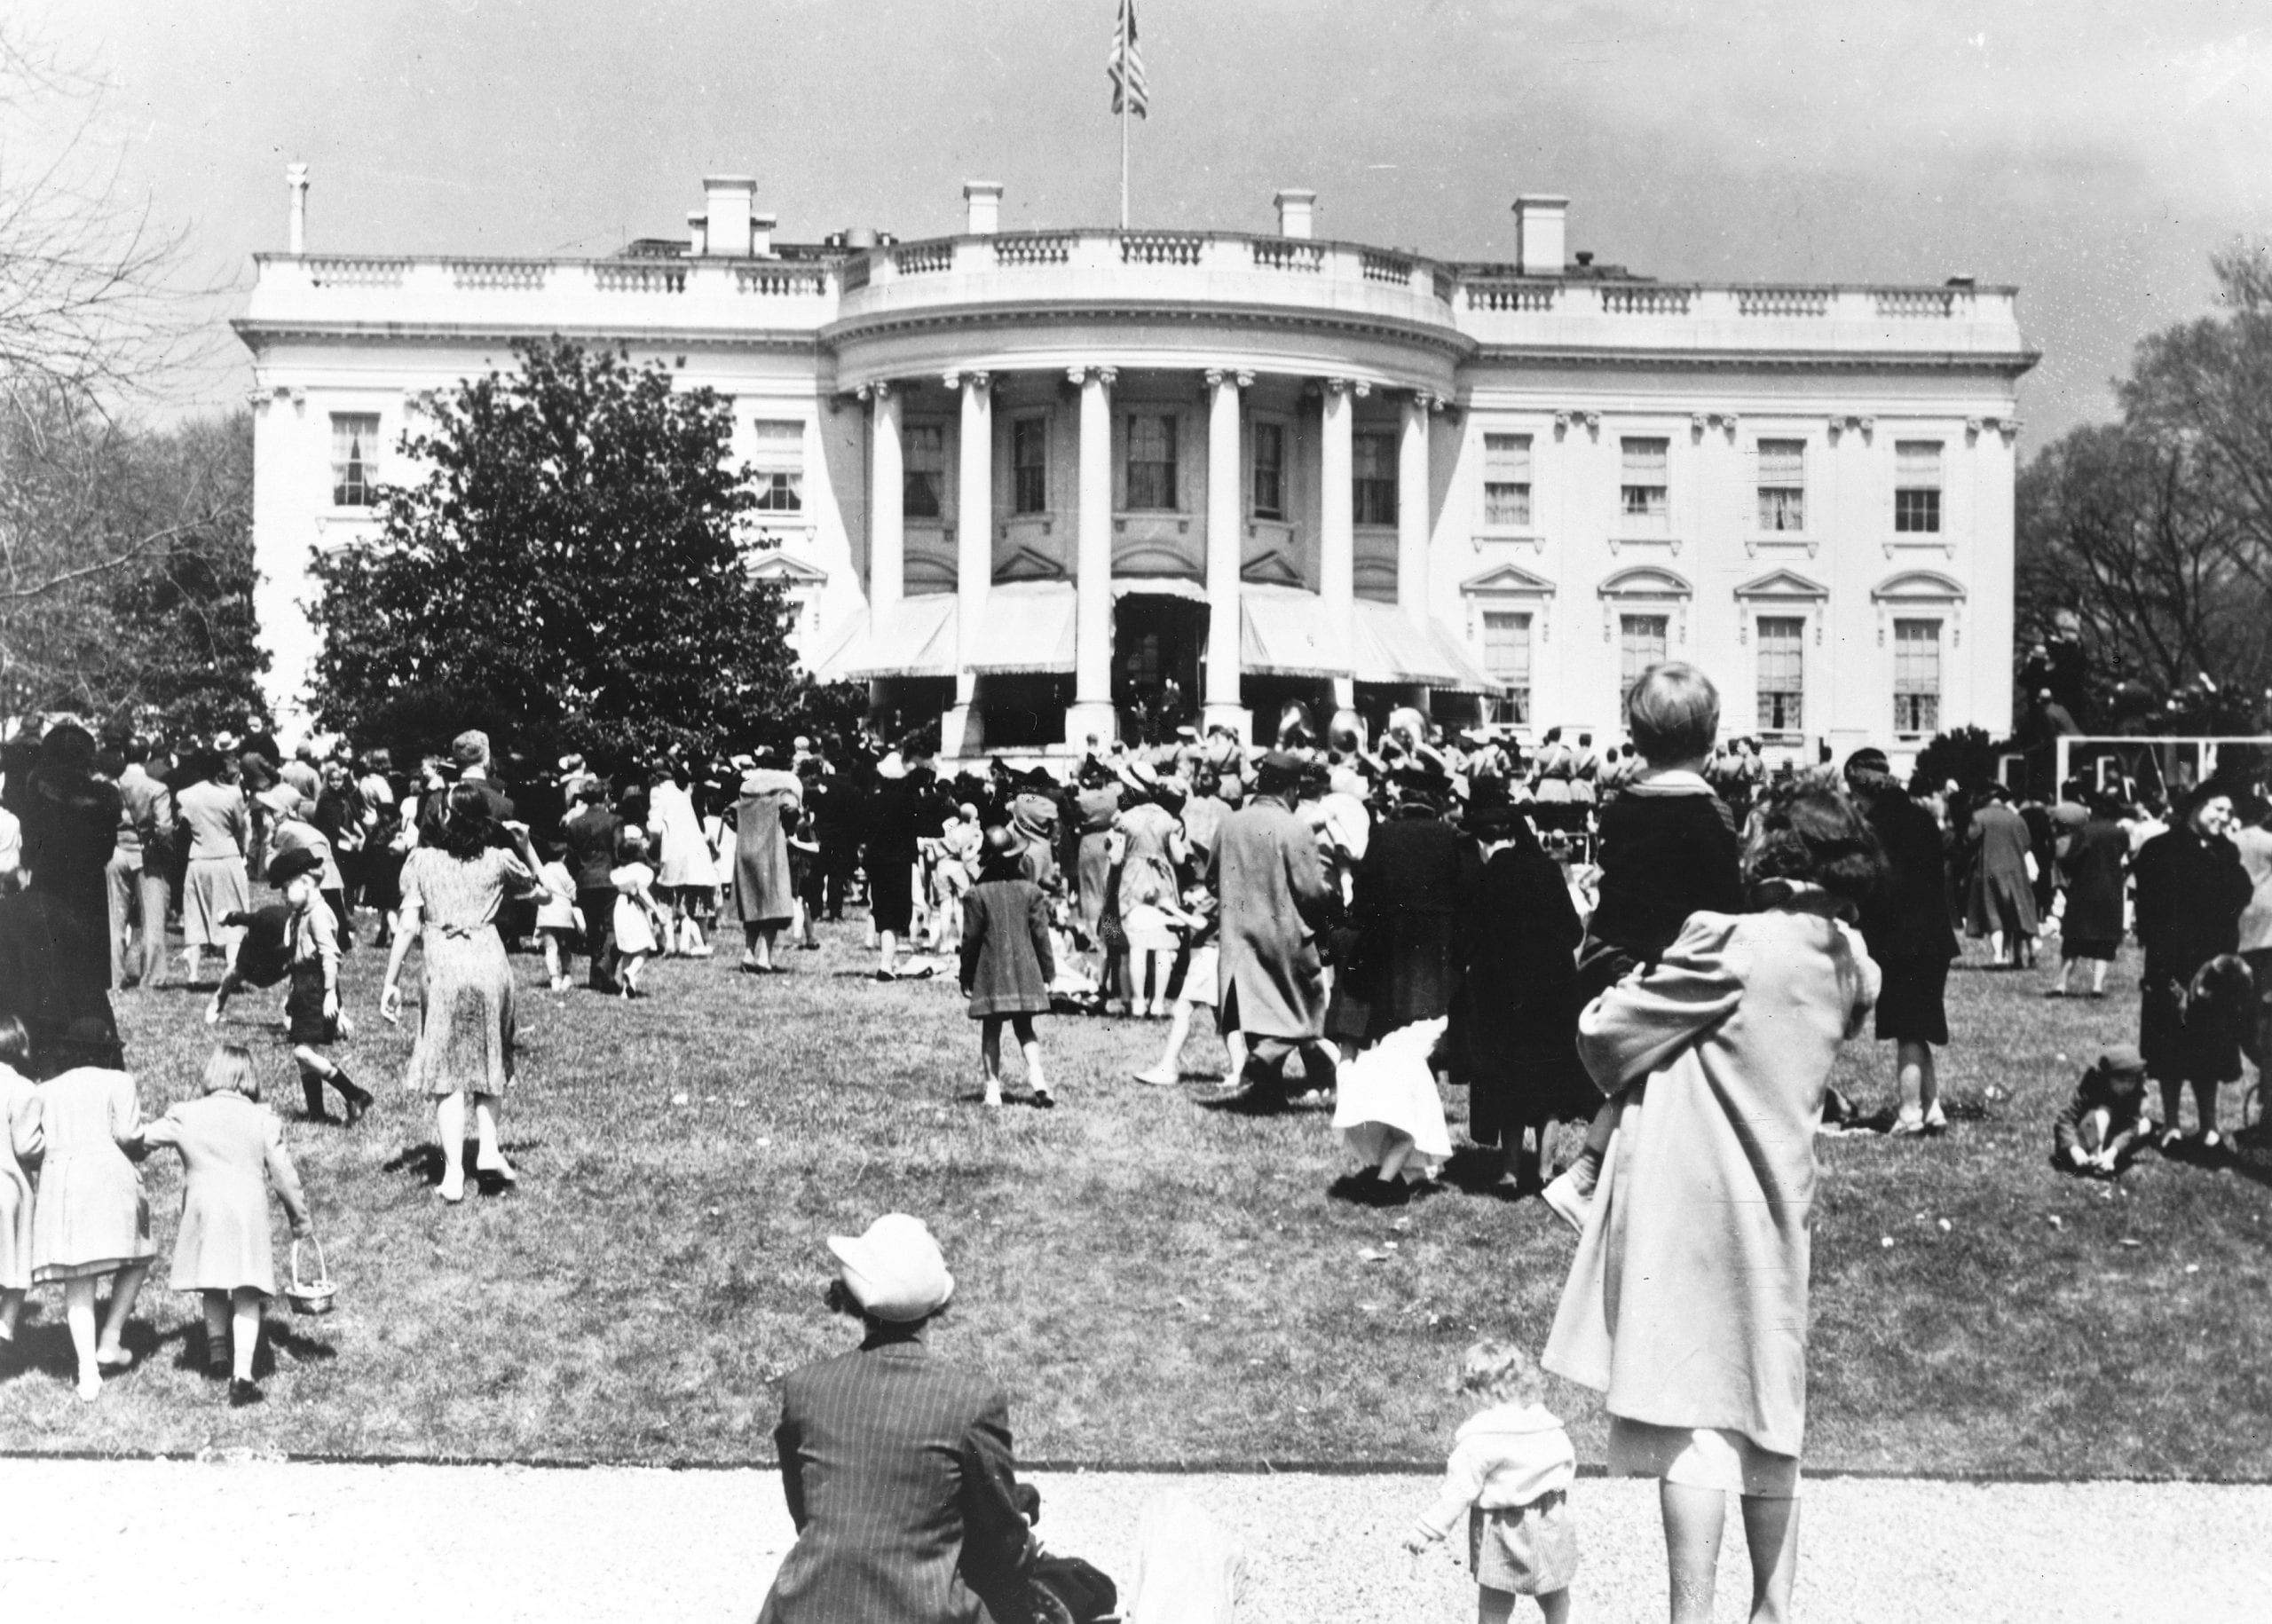 World War II Photo of White House South Lawn